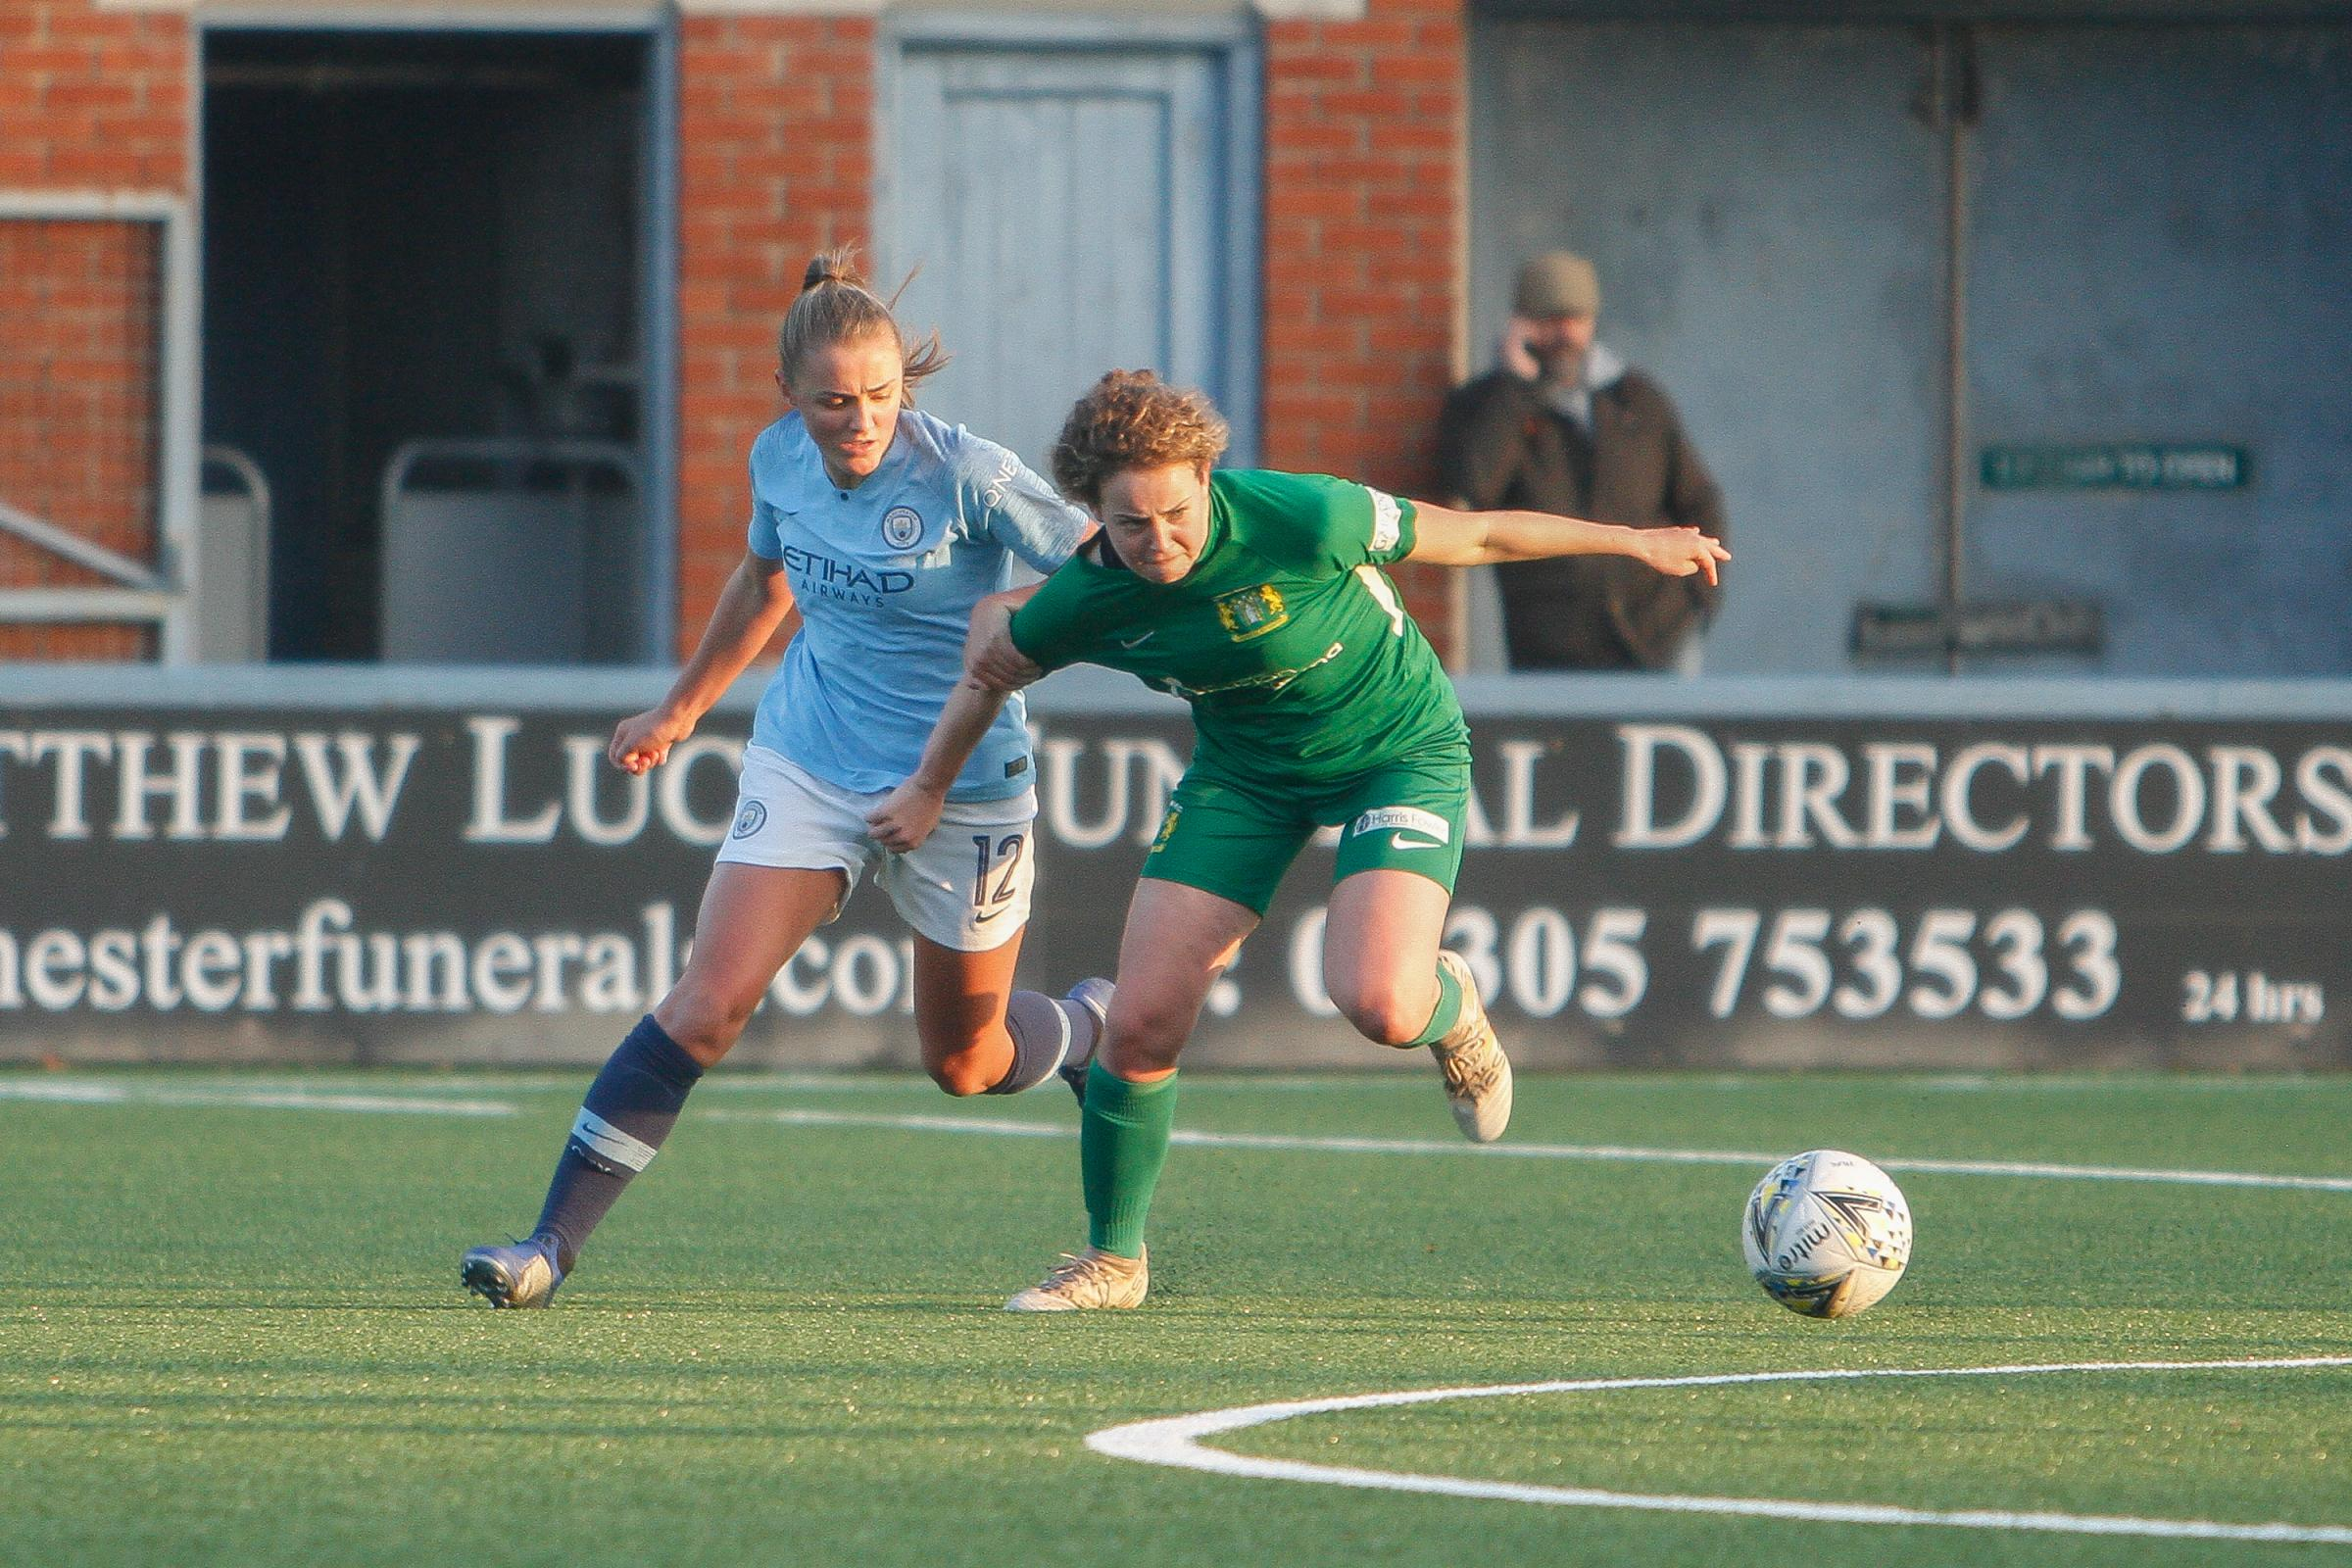 ON TARGET: Emily Syme, right, bagged her first Women's Super League goal   Picture: LEE COLLIER PHOTOGRAPHY